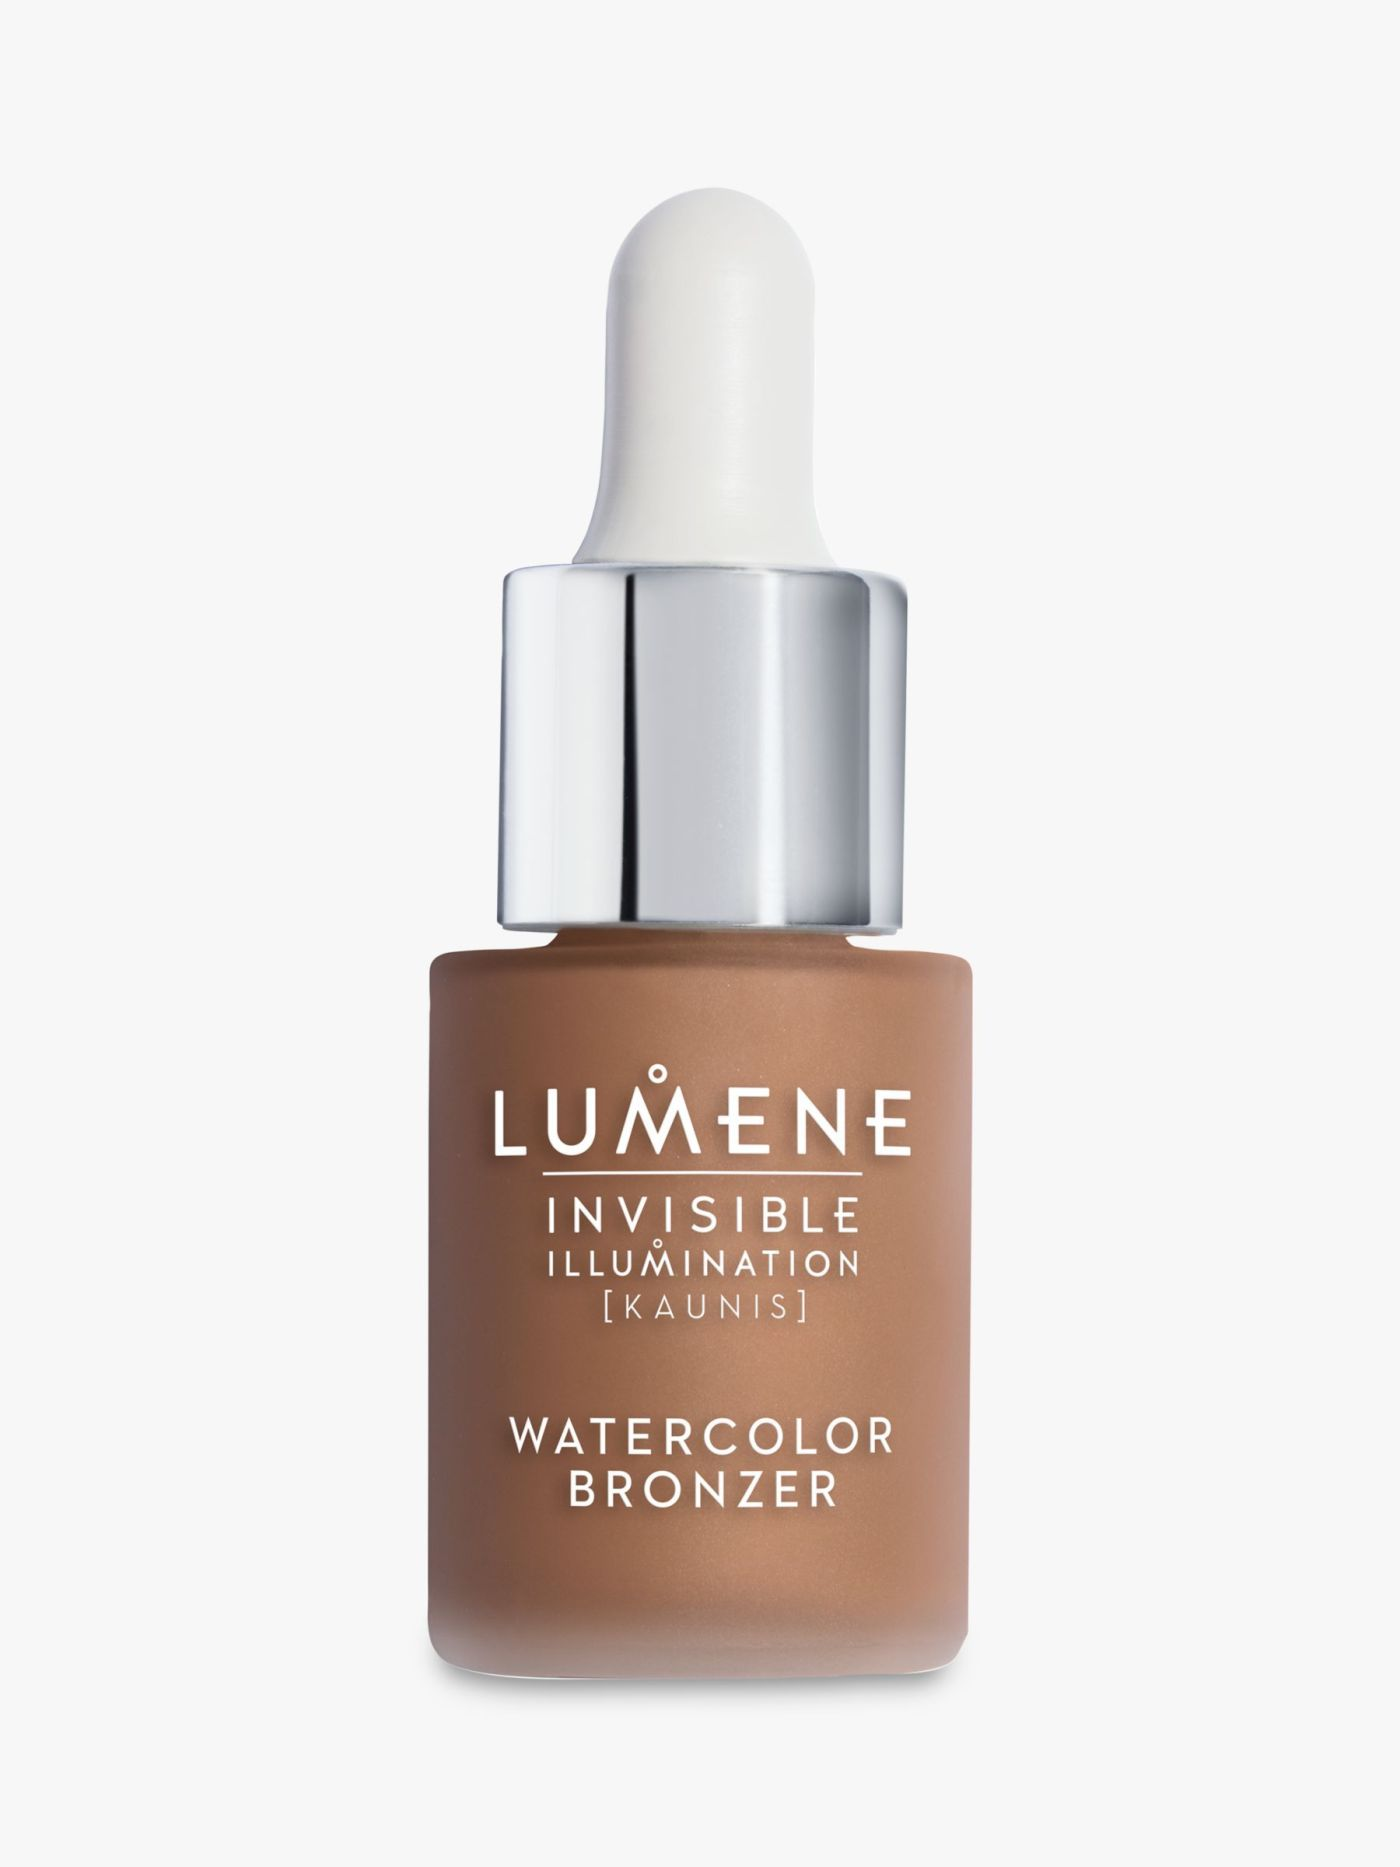 Lumene Invisible Illumination Watercolour Bronzer